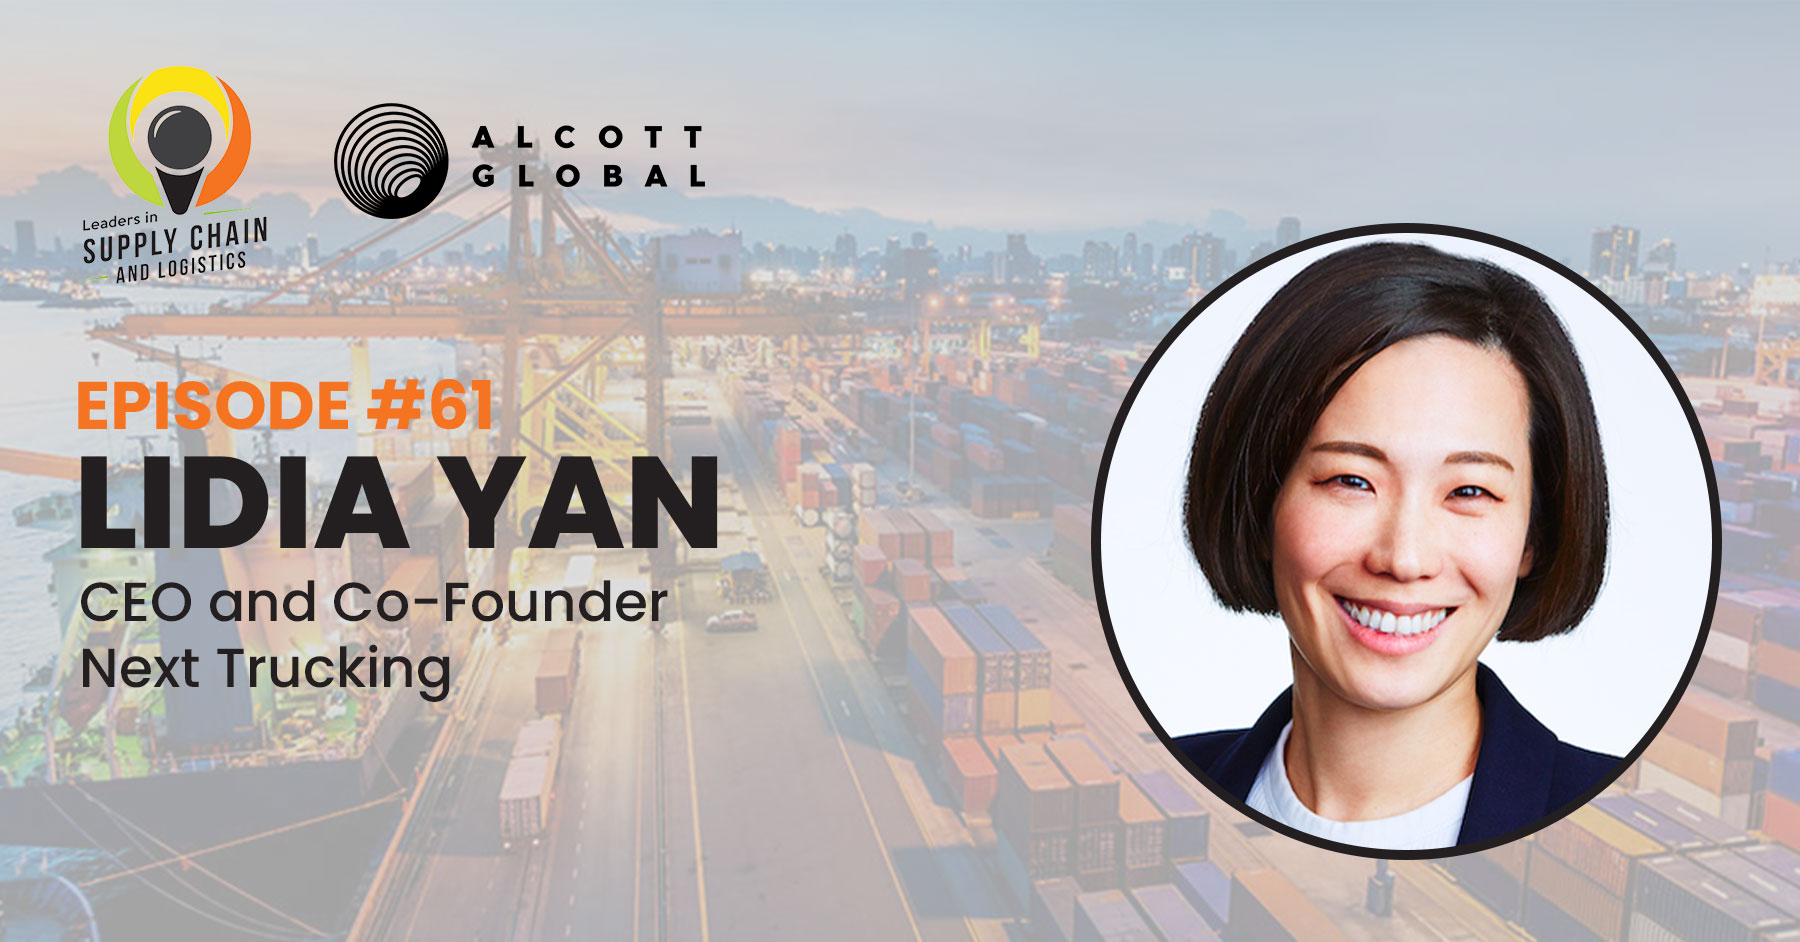 #61: Lidia Yan CEO and Co-Founder of Next Trucking Featured Image